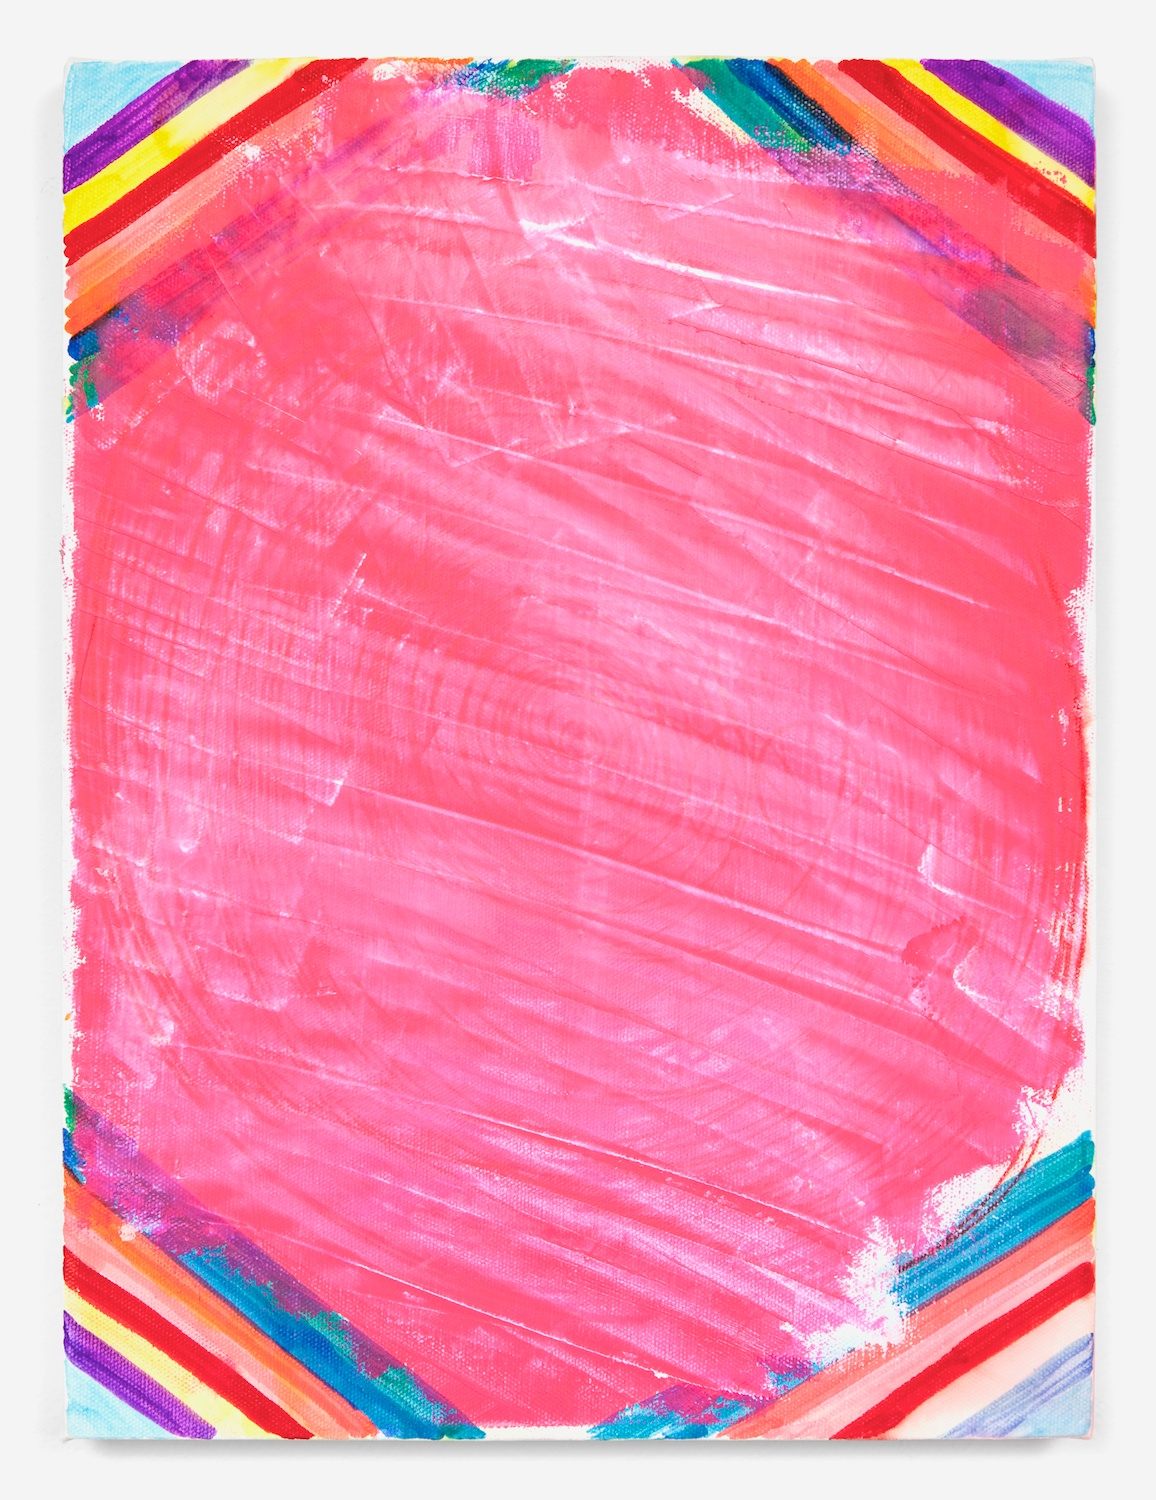 Joanne Greenbaum  Untitled  2011 Oil, acrylic and mixed media on linen 16h x 12w in JG040